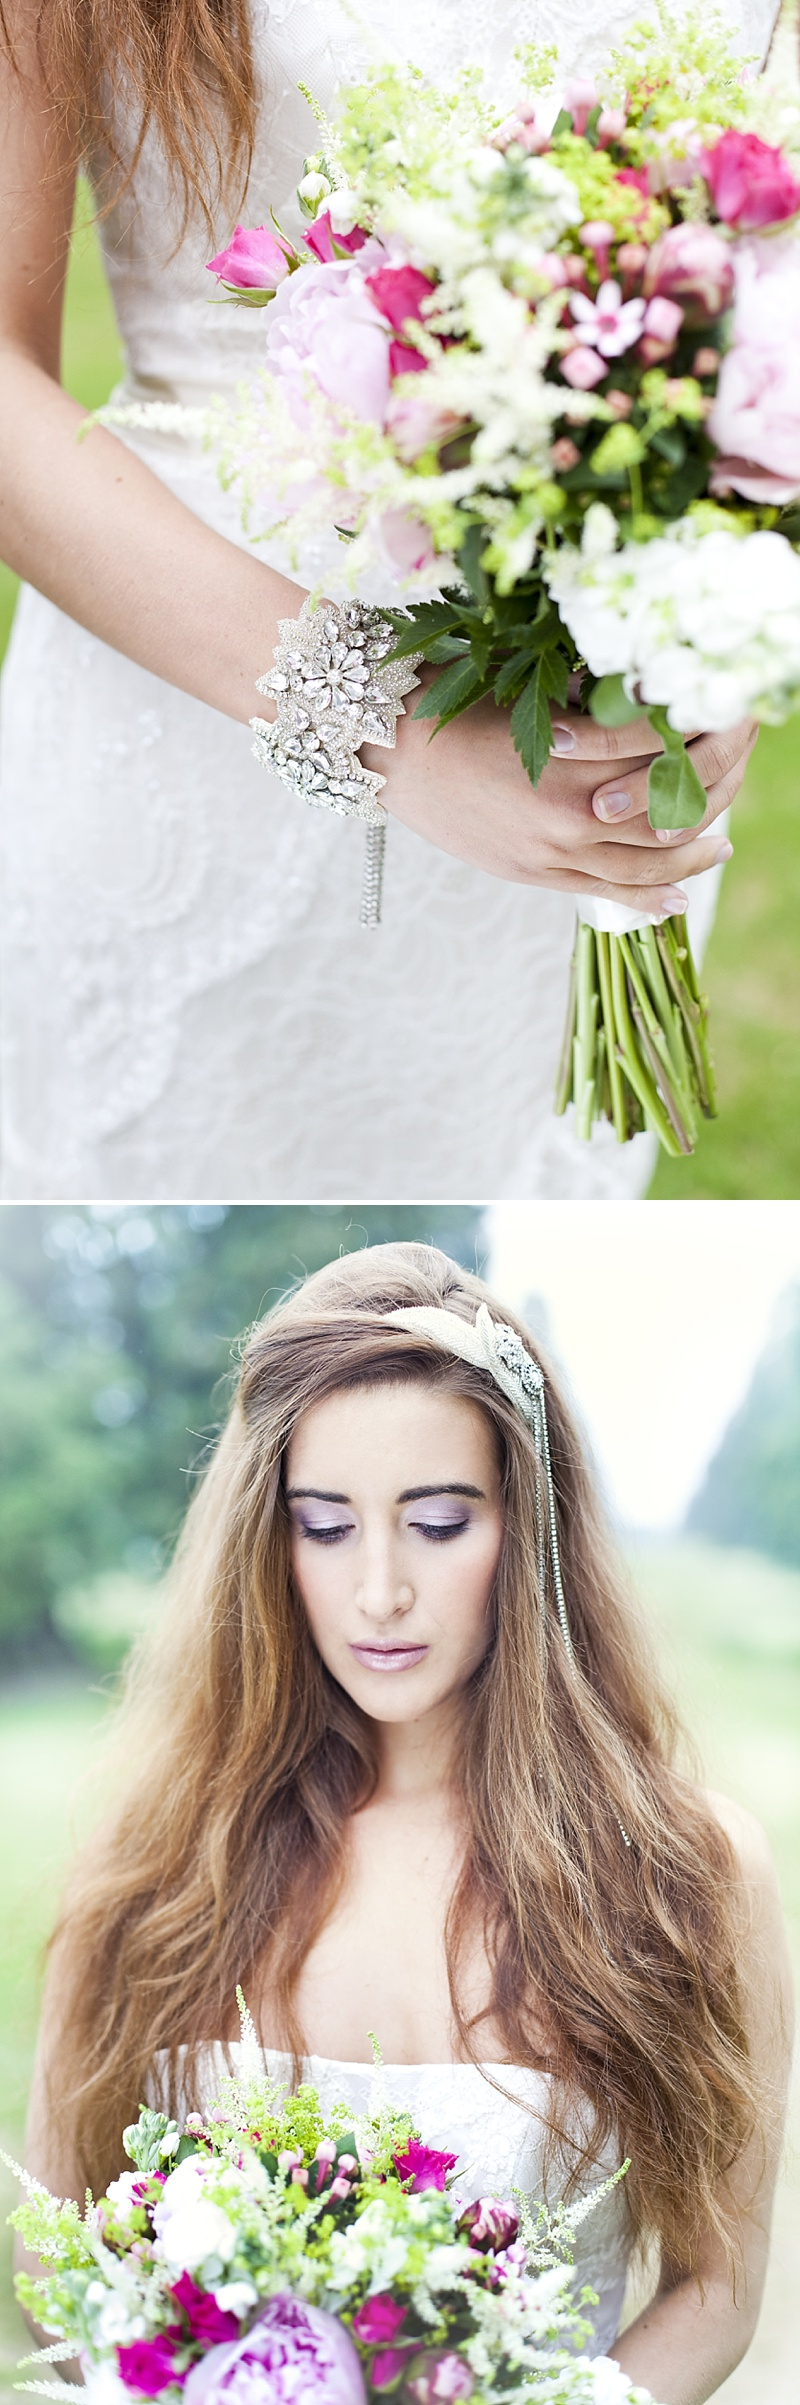 Inspiration Shoot Featuring Donna Crain Headpieces With A Bridal Make Up Product Recommendations From Adele Rosie Make Up Artist Images By Cecelina Photography 0002 Heavenly Headpieces.